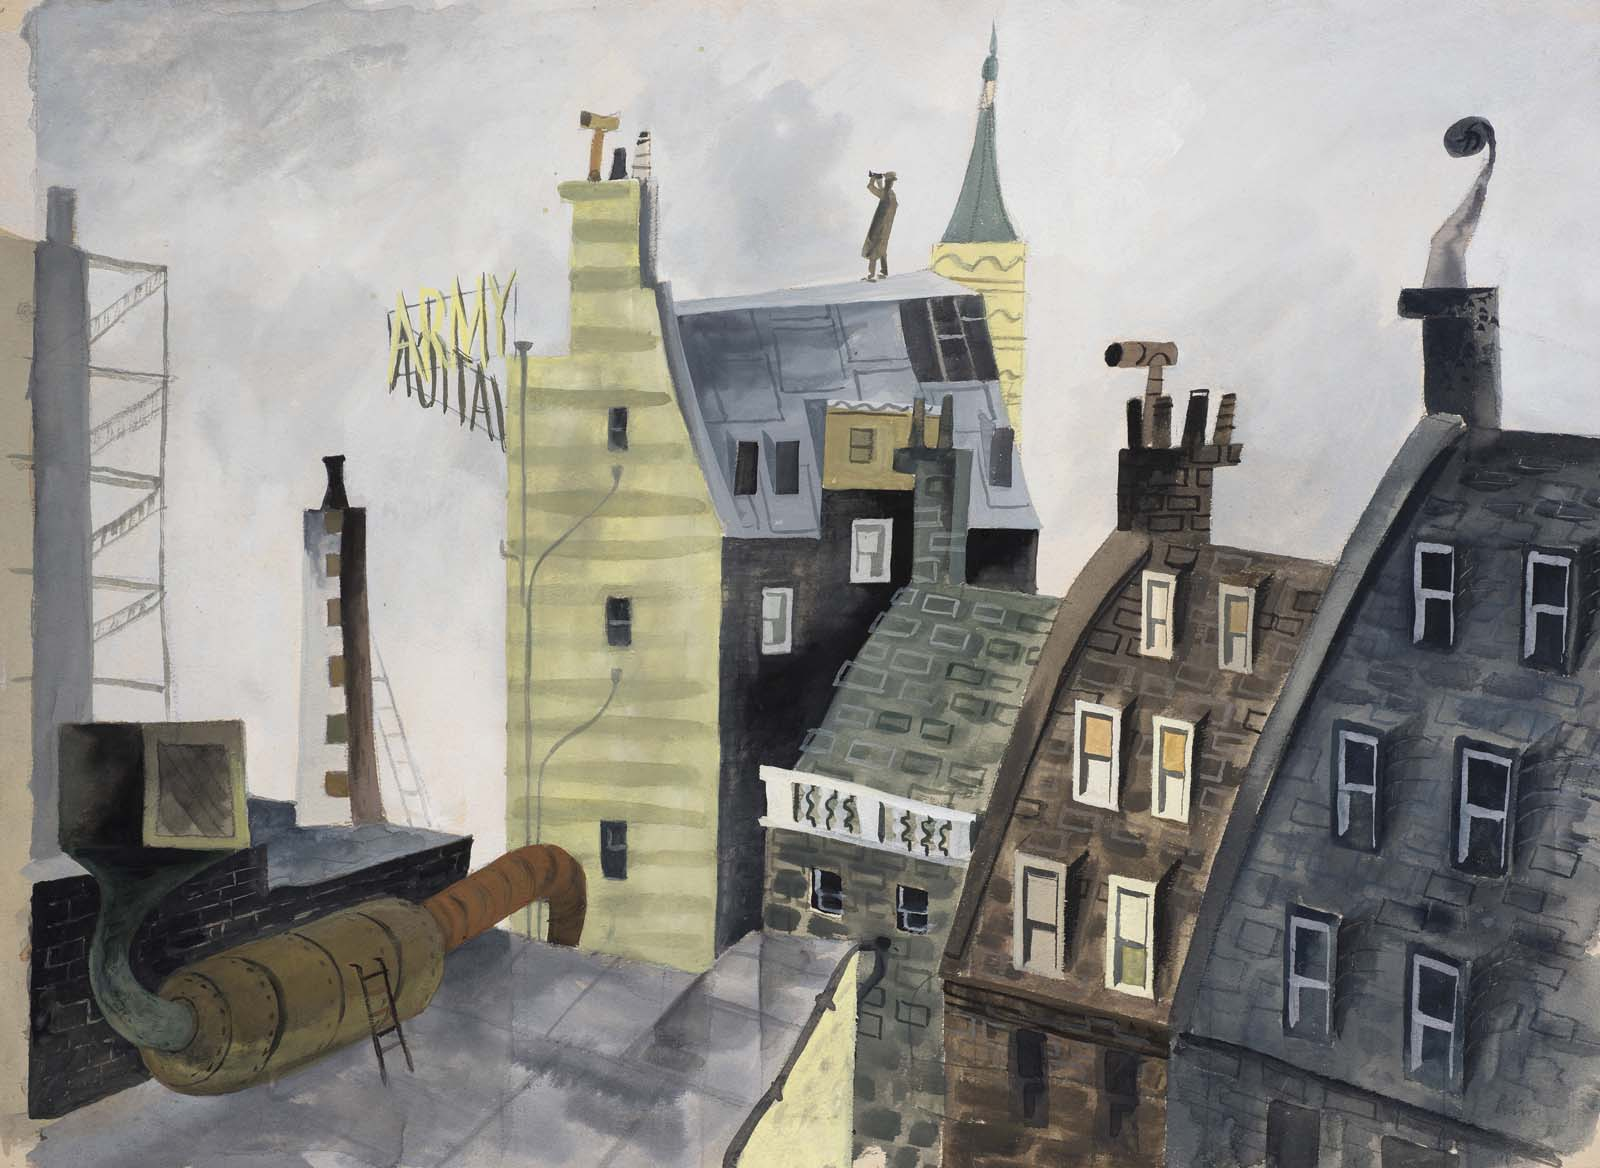 a watercolour showing rooftops and a man in a tin hat with binoculars on the highest roof